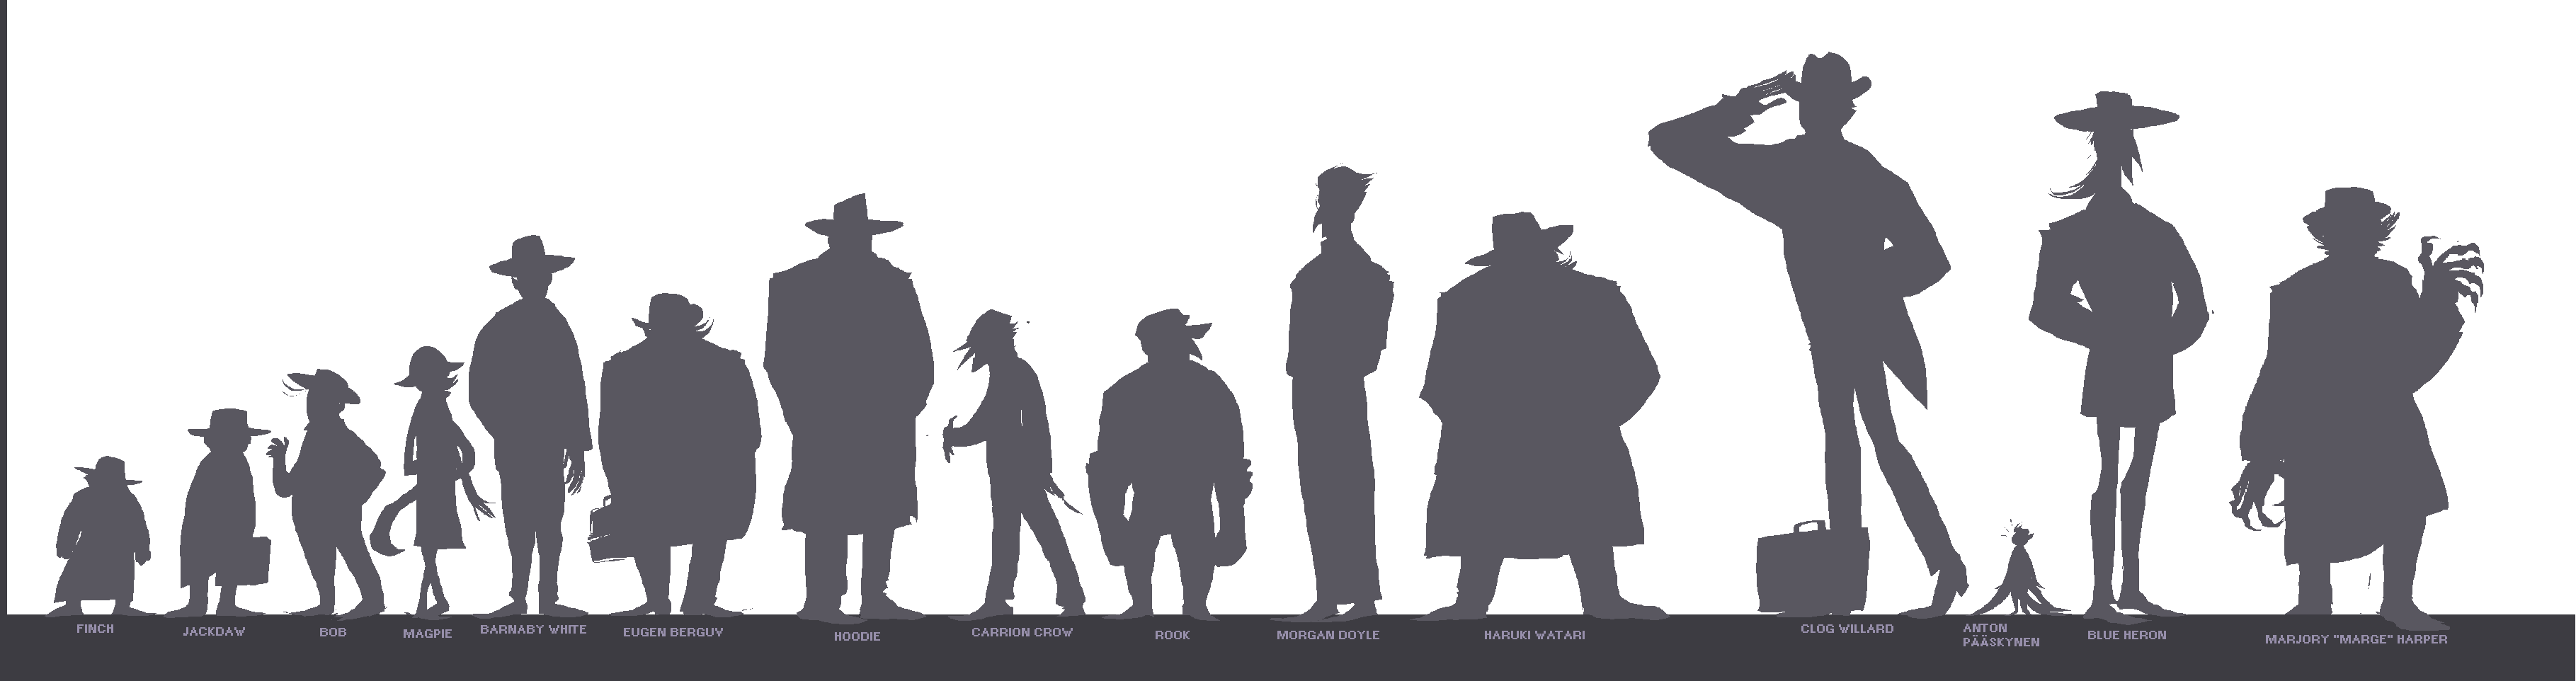 how to draw people of different heights